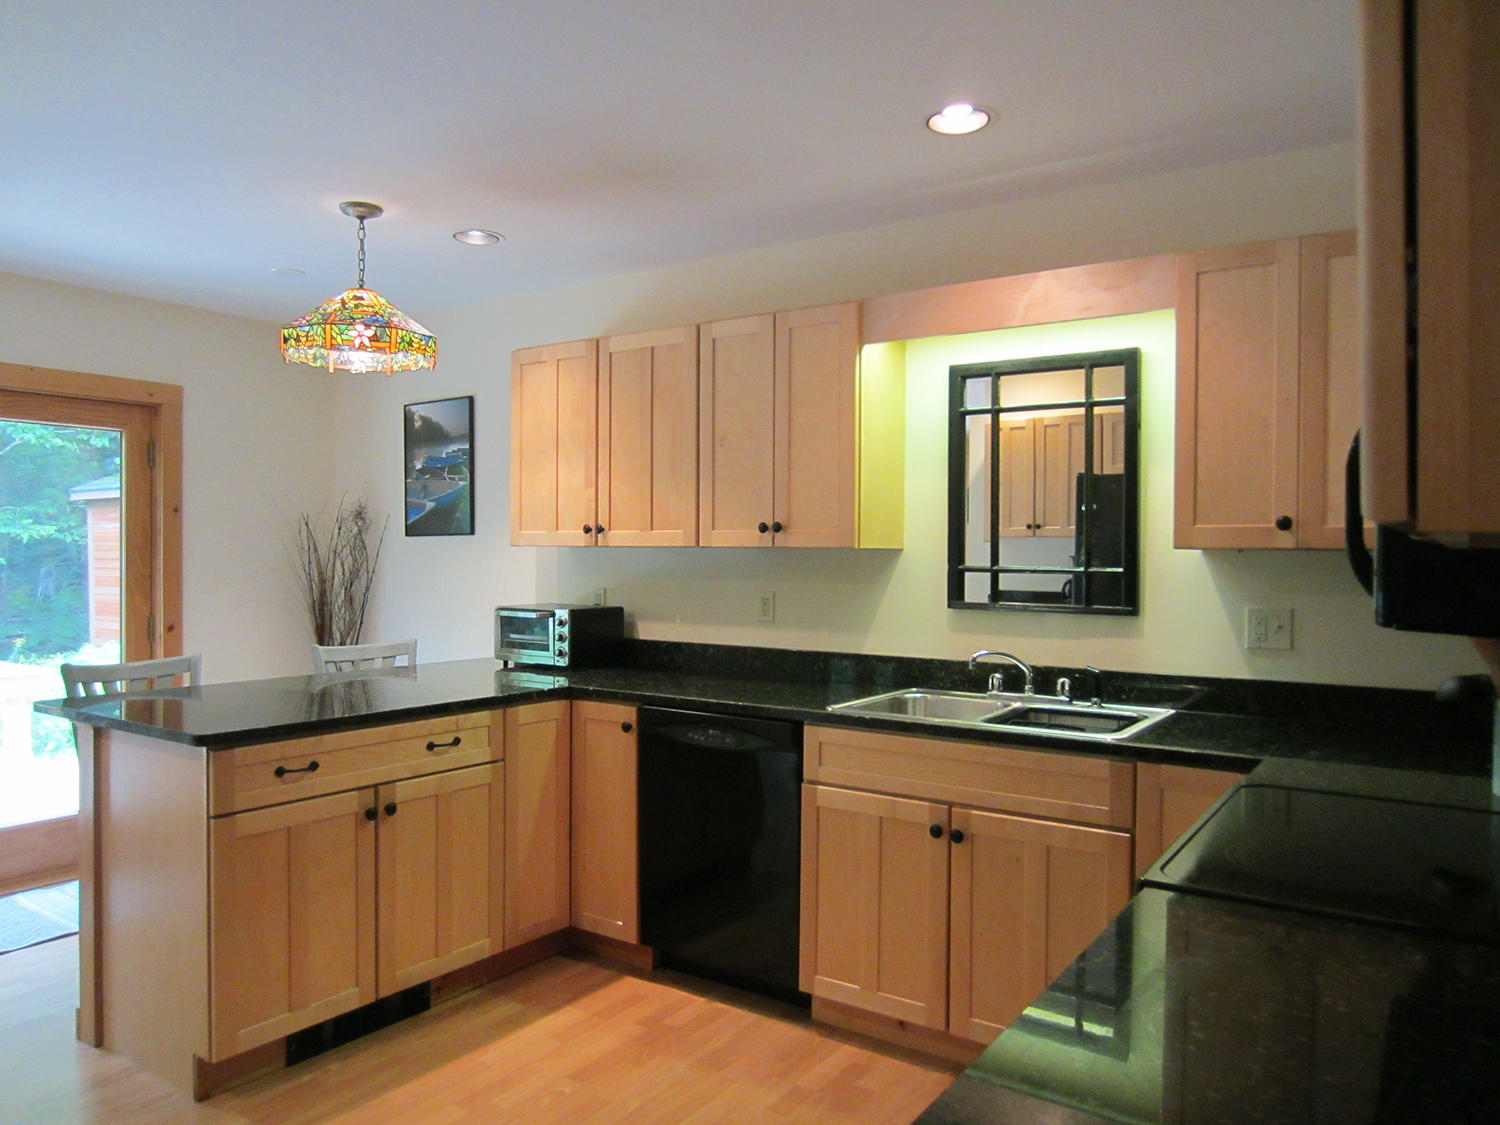 16-Kitchen-6923